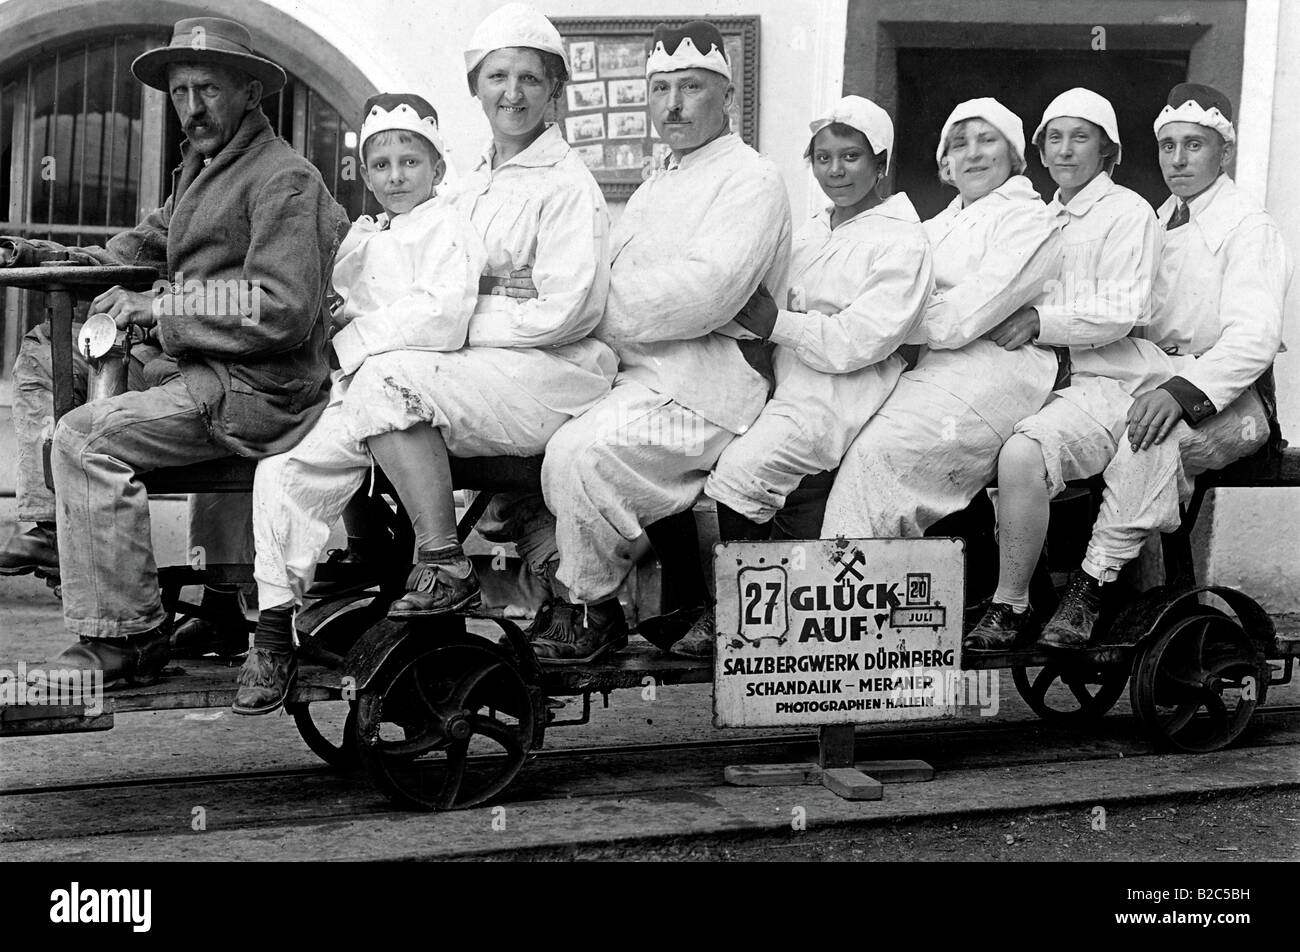 Good luck! historical photo, 20 July 1927 - Stock Image